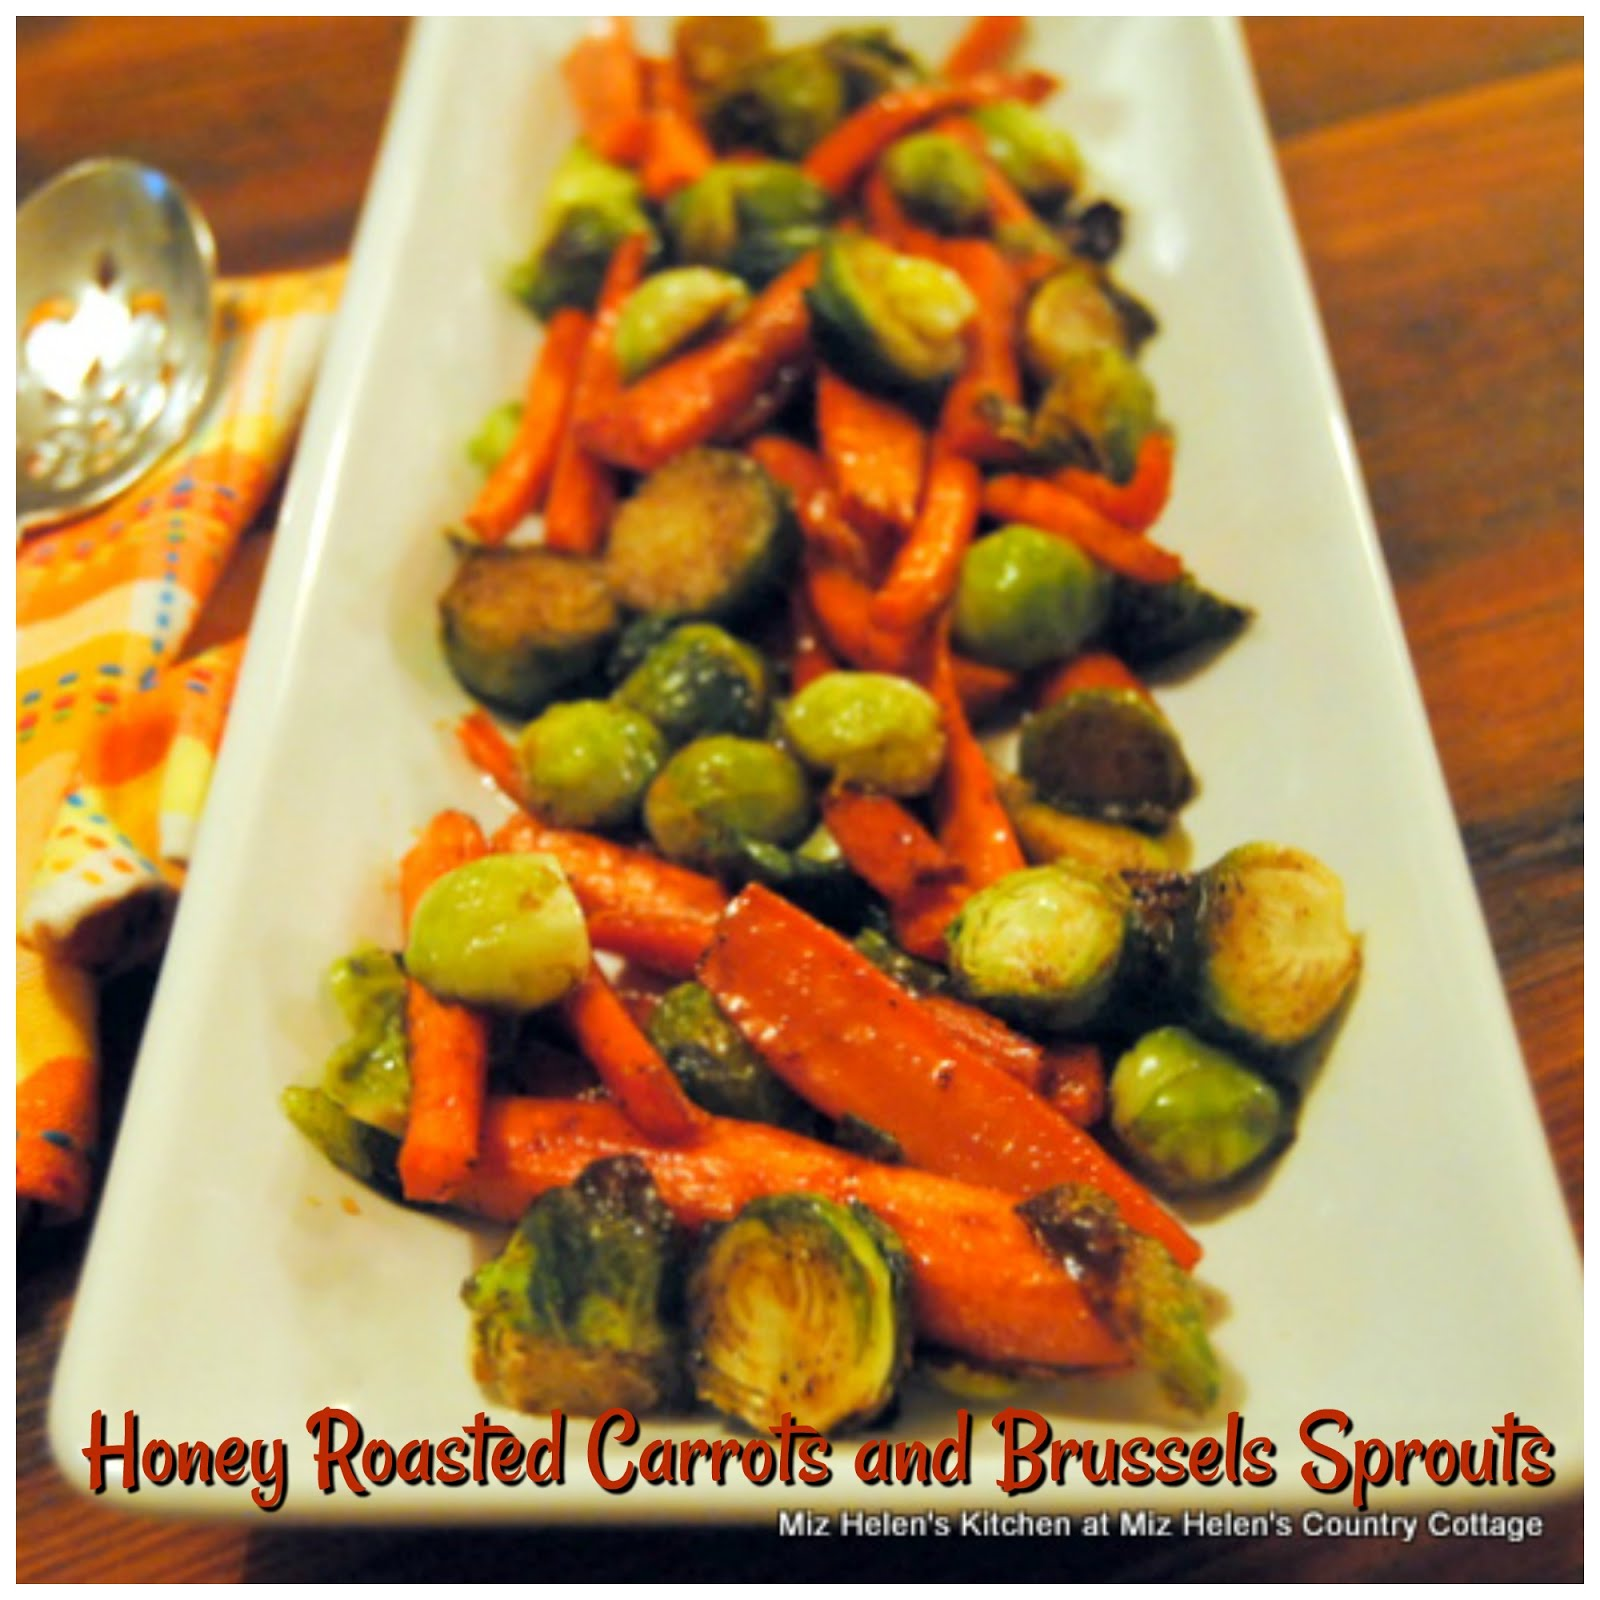 Honey Roasted Carrots and Brussels Sprouts